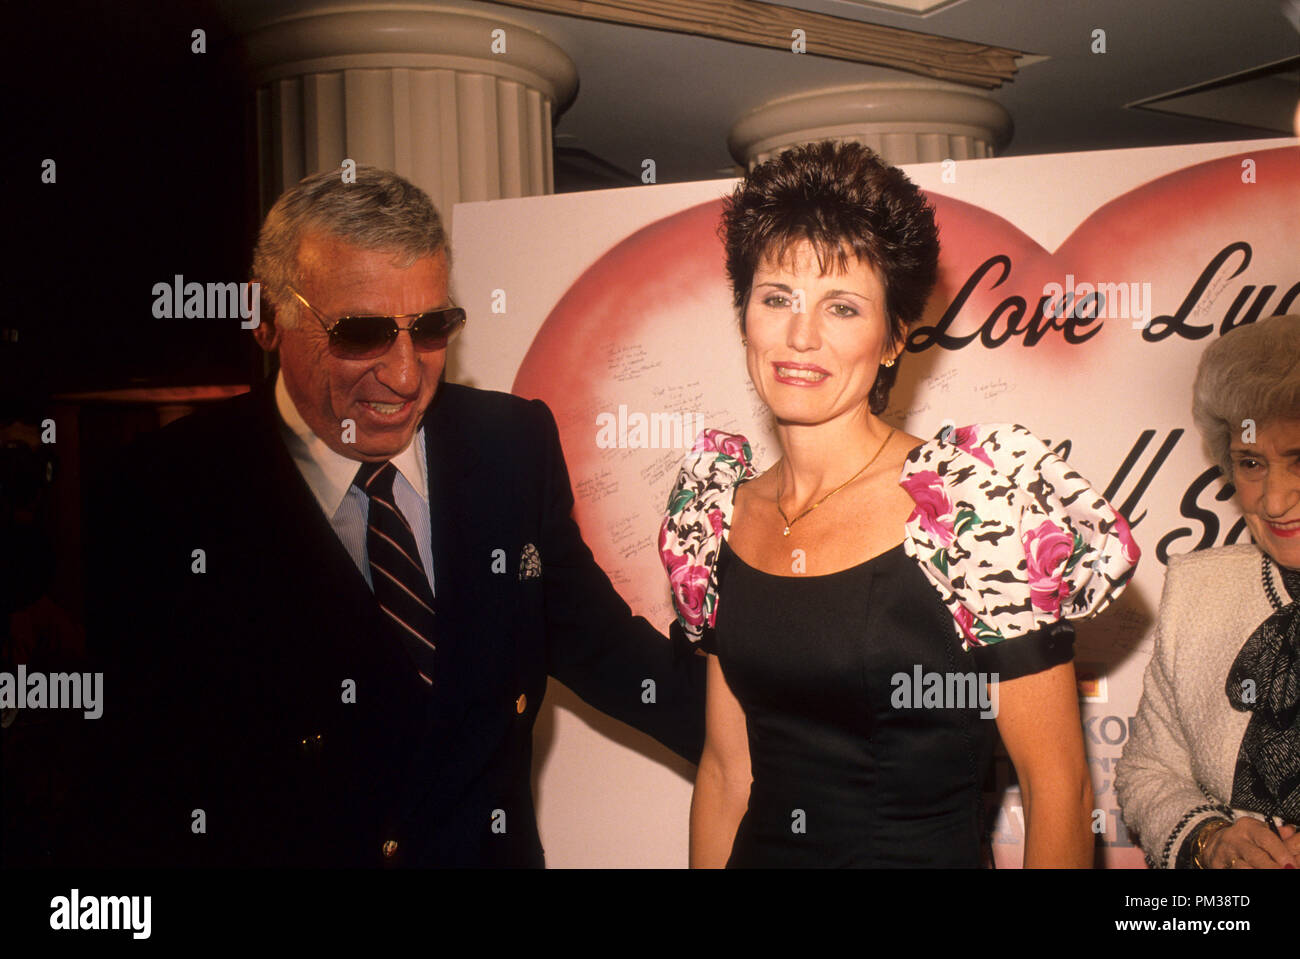 Gary Morton and Lucy Arnaz at the Eastman Second Century Award Ceremony honoring Lucille Ball, 1989.  File Reference # 1238_023THA - Stock Image